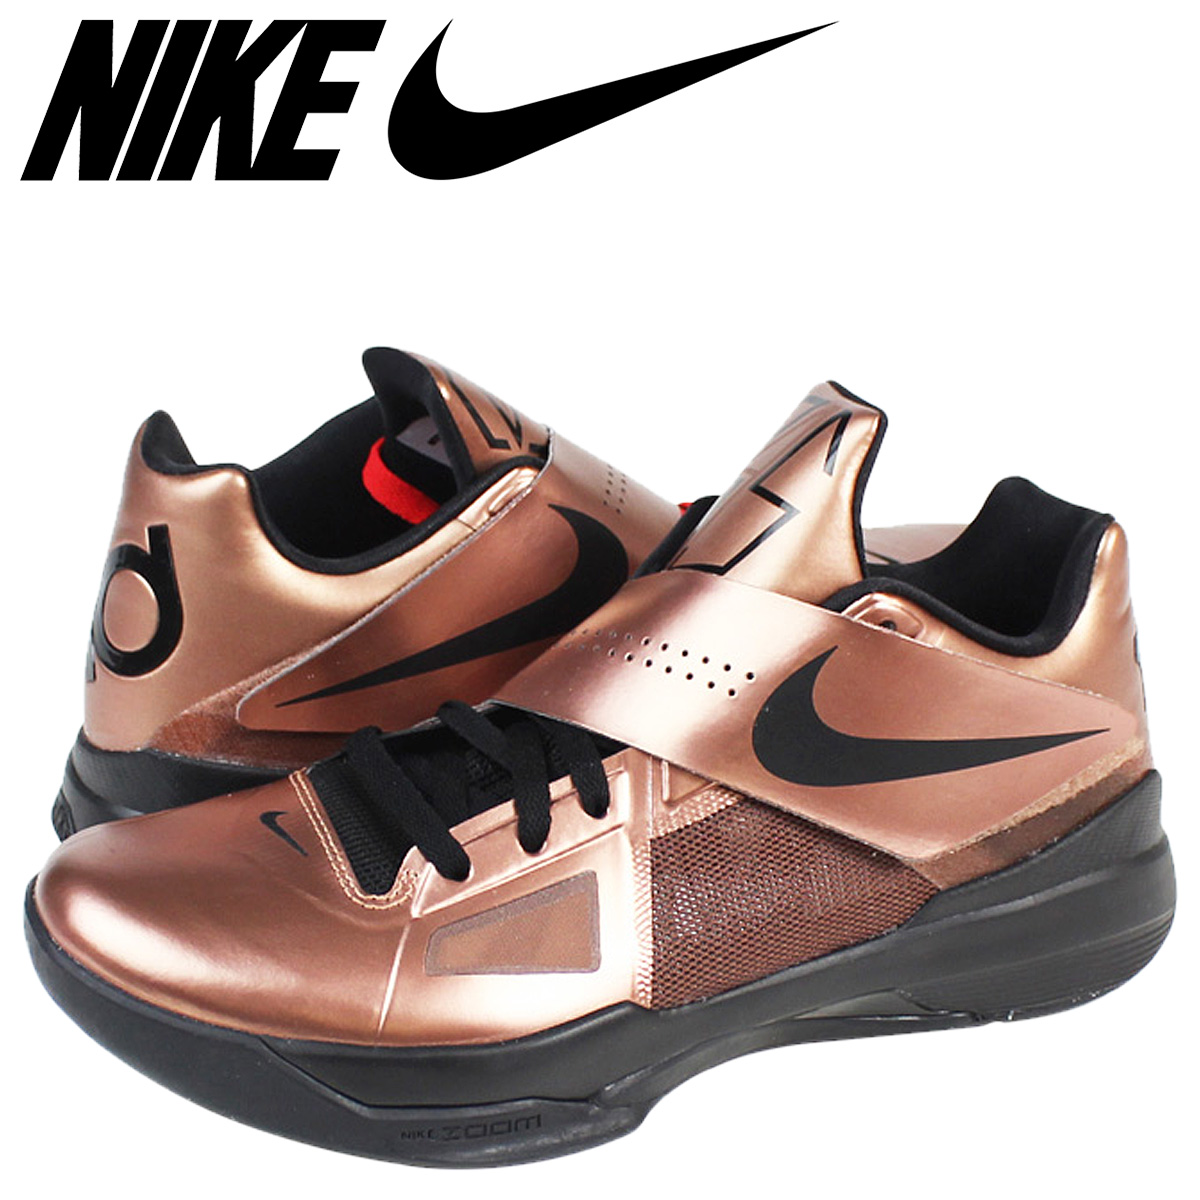 a1c5fd013ee0 ALLSPORTS  Nike NIKE zoom sneakers ZOOM KD IV CHRISTMAS EDITION ...